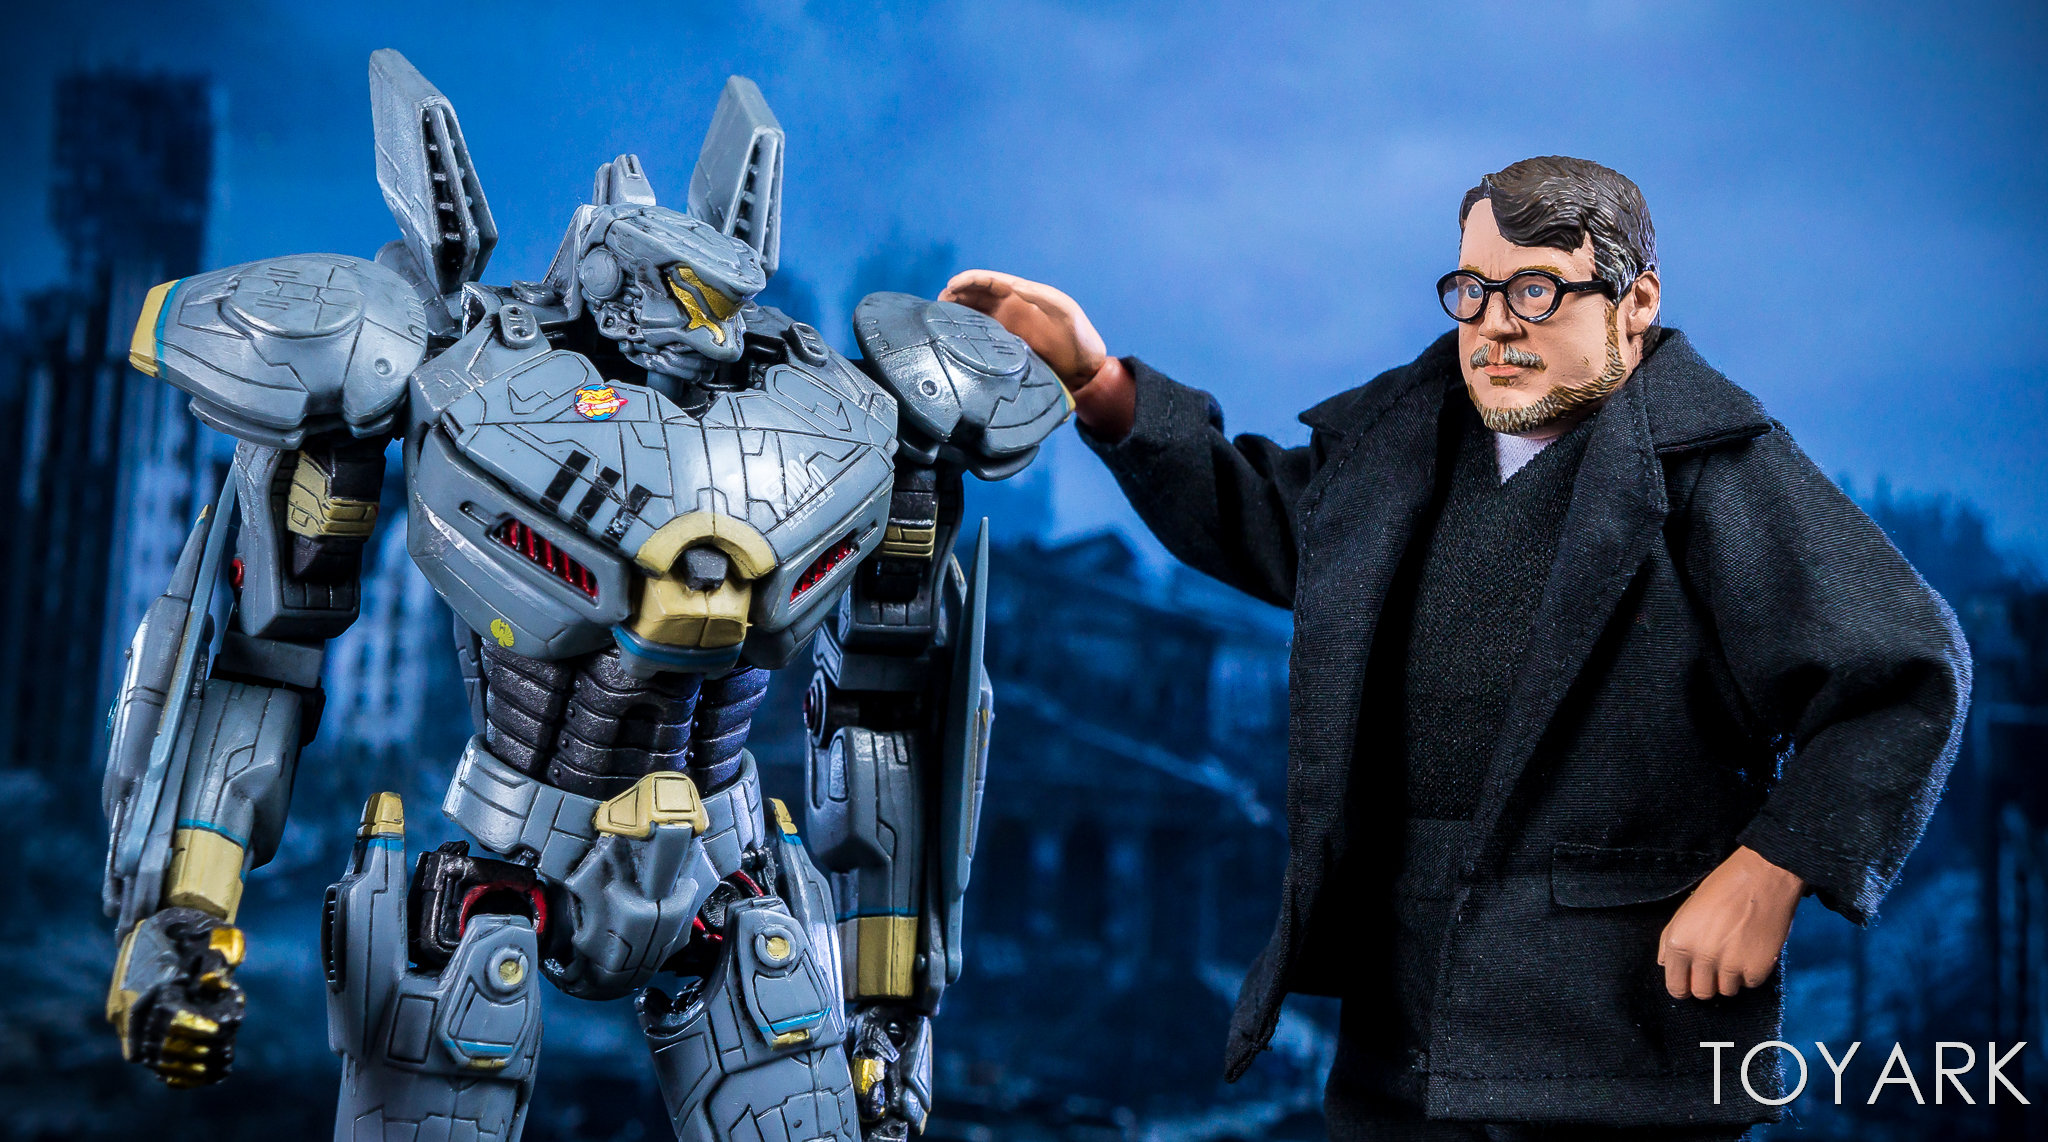 https://news.toyark.com/wp-content/uploads/sites/4/2018/07/NECA-Guillermo-del-Toro-SDCC-Figure-027.jpg